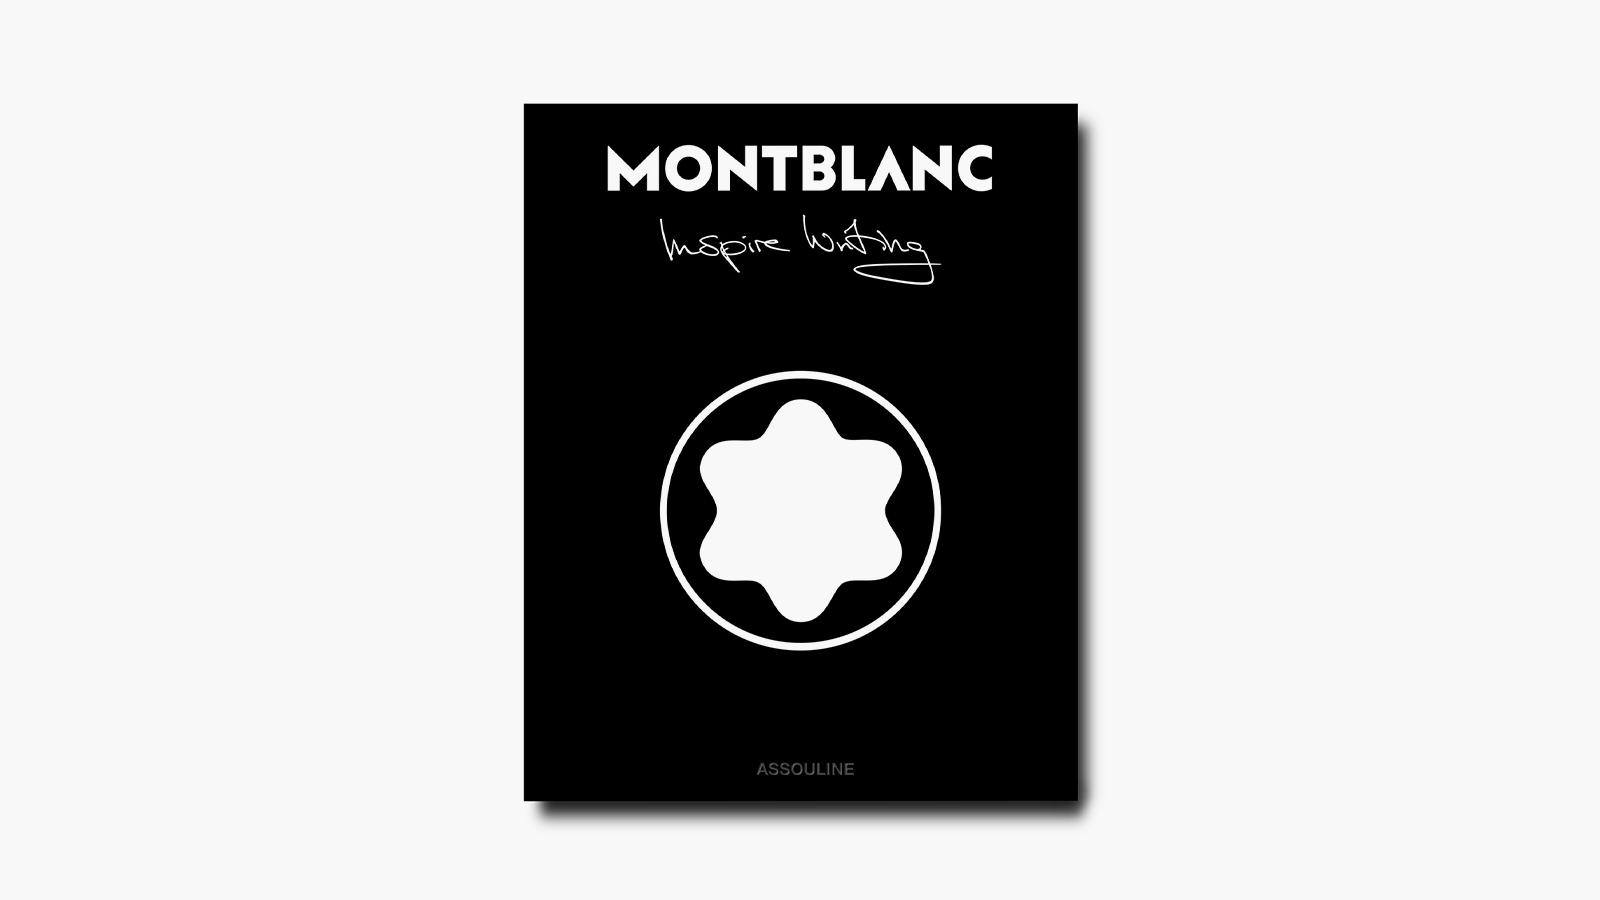 'Montblanc: Inspire Writing' by Alexander Fury